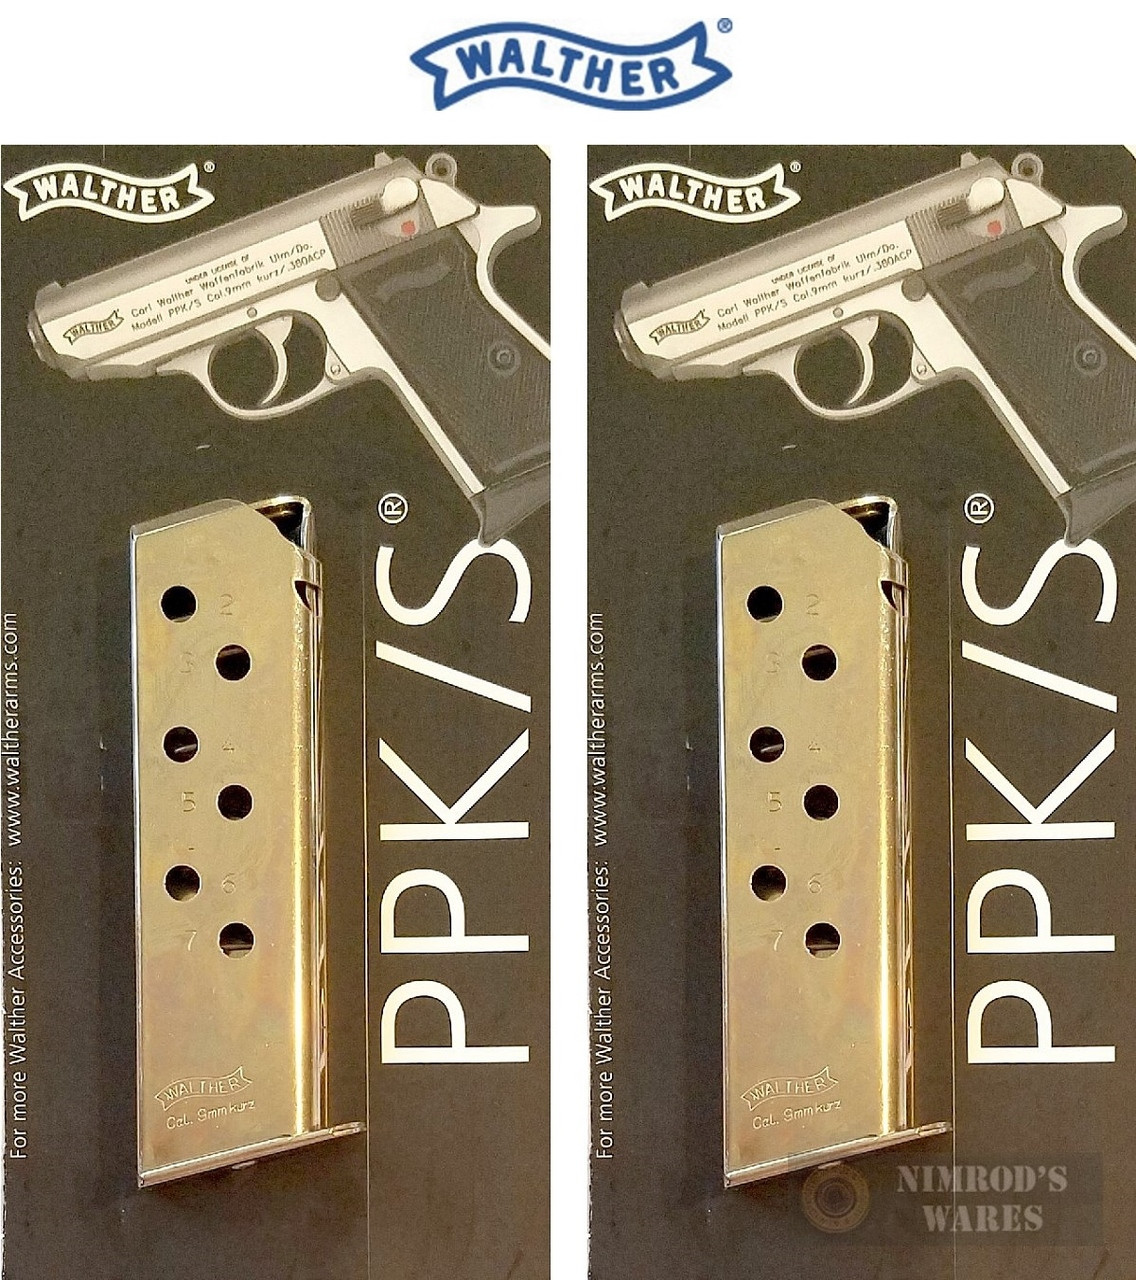 WALTHER ARMS 2246012 PPK//S 380 ACP 7 RD NICKEL FINISH